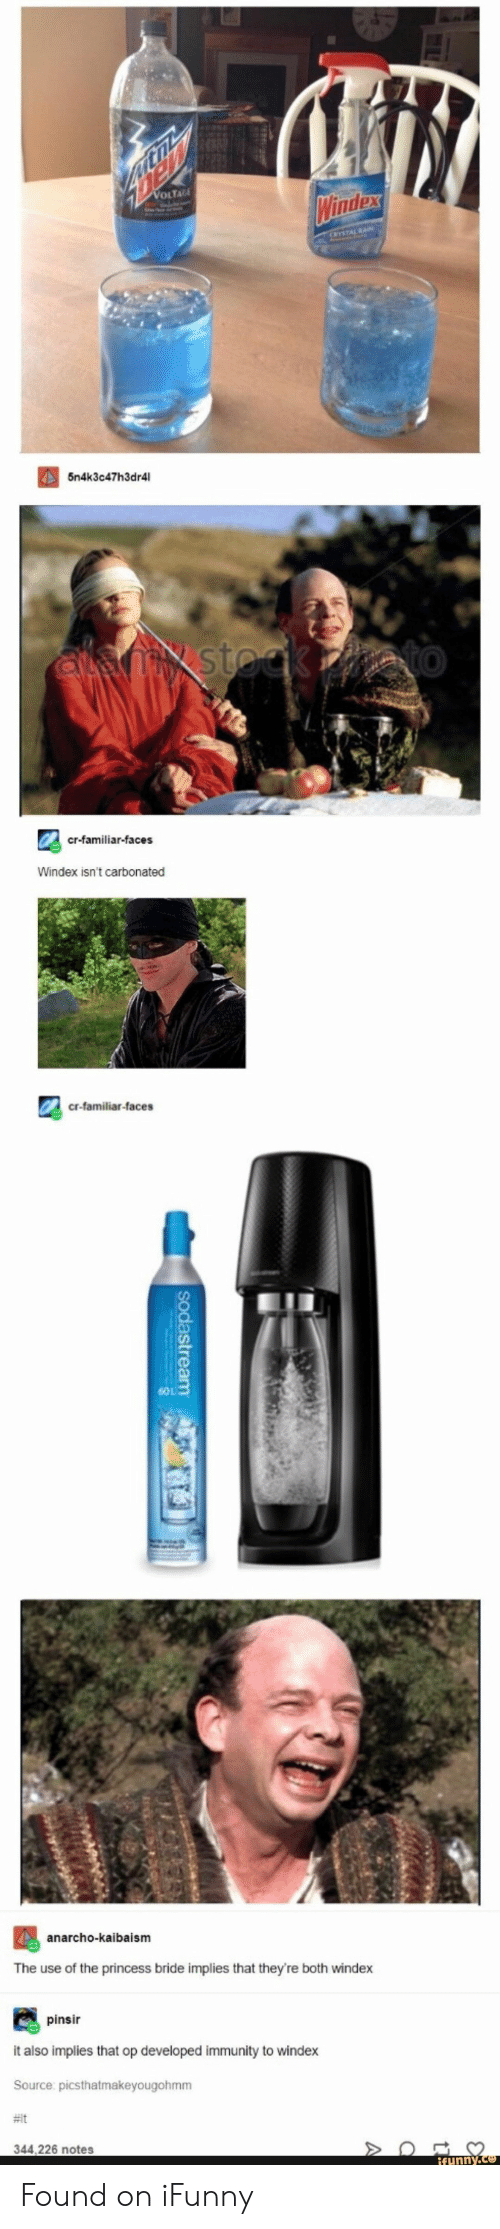 Princess, The Princess Bride, and Princess Bride: 5n4k3c47h3dr4l  0  St  cr-familiar-faces  Windex isn't carbonated  cr-familiar-faces  anarcho-kalbaism  The use of the princess bride implies that they're both windex  pinsir  it also implies that op developed immunity to windex  Source picsthatmakeyougohmm  #it  344,226 notes Found on iFunny